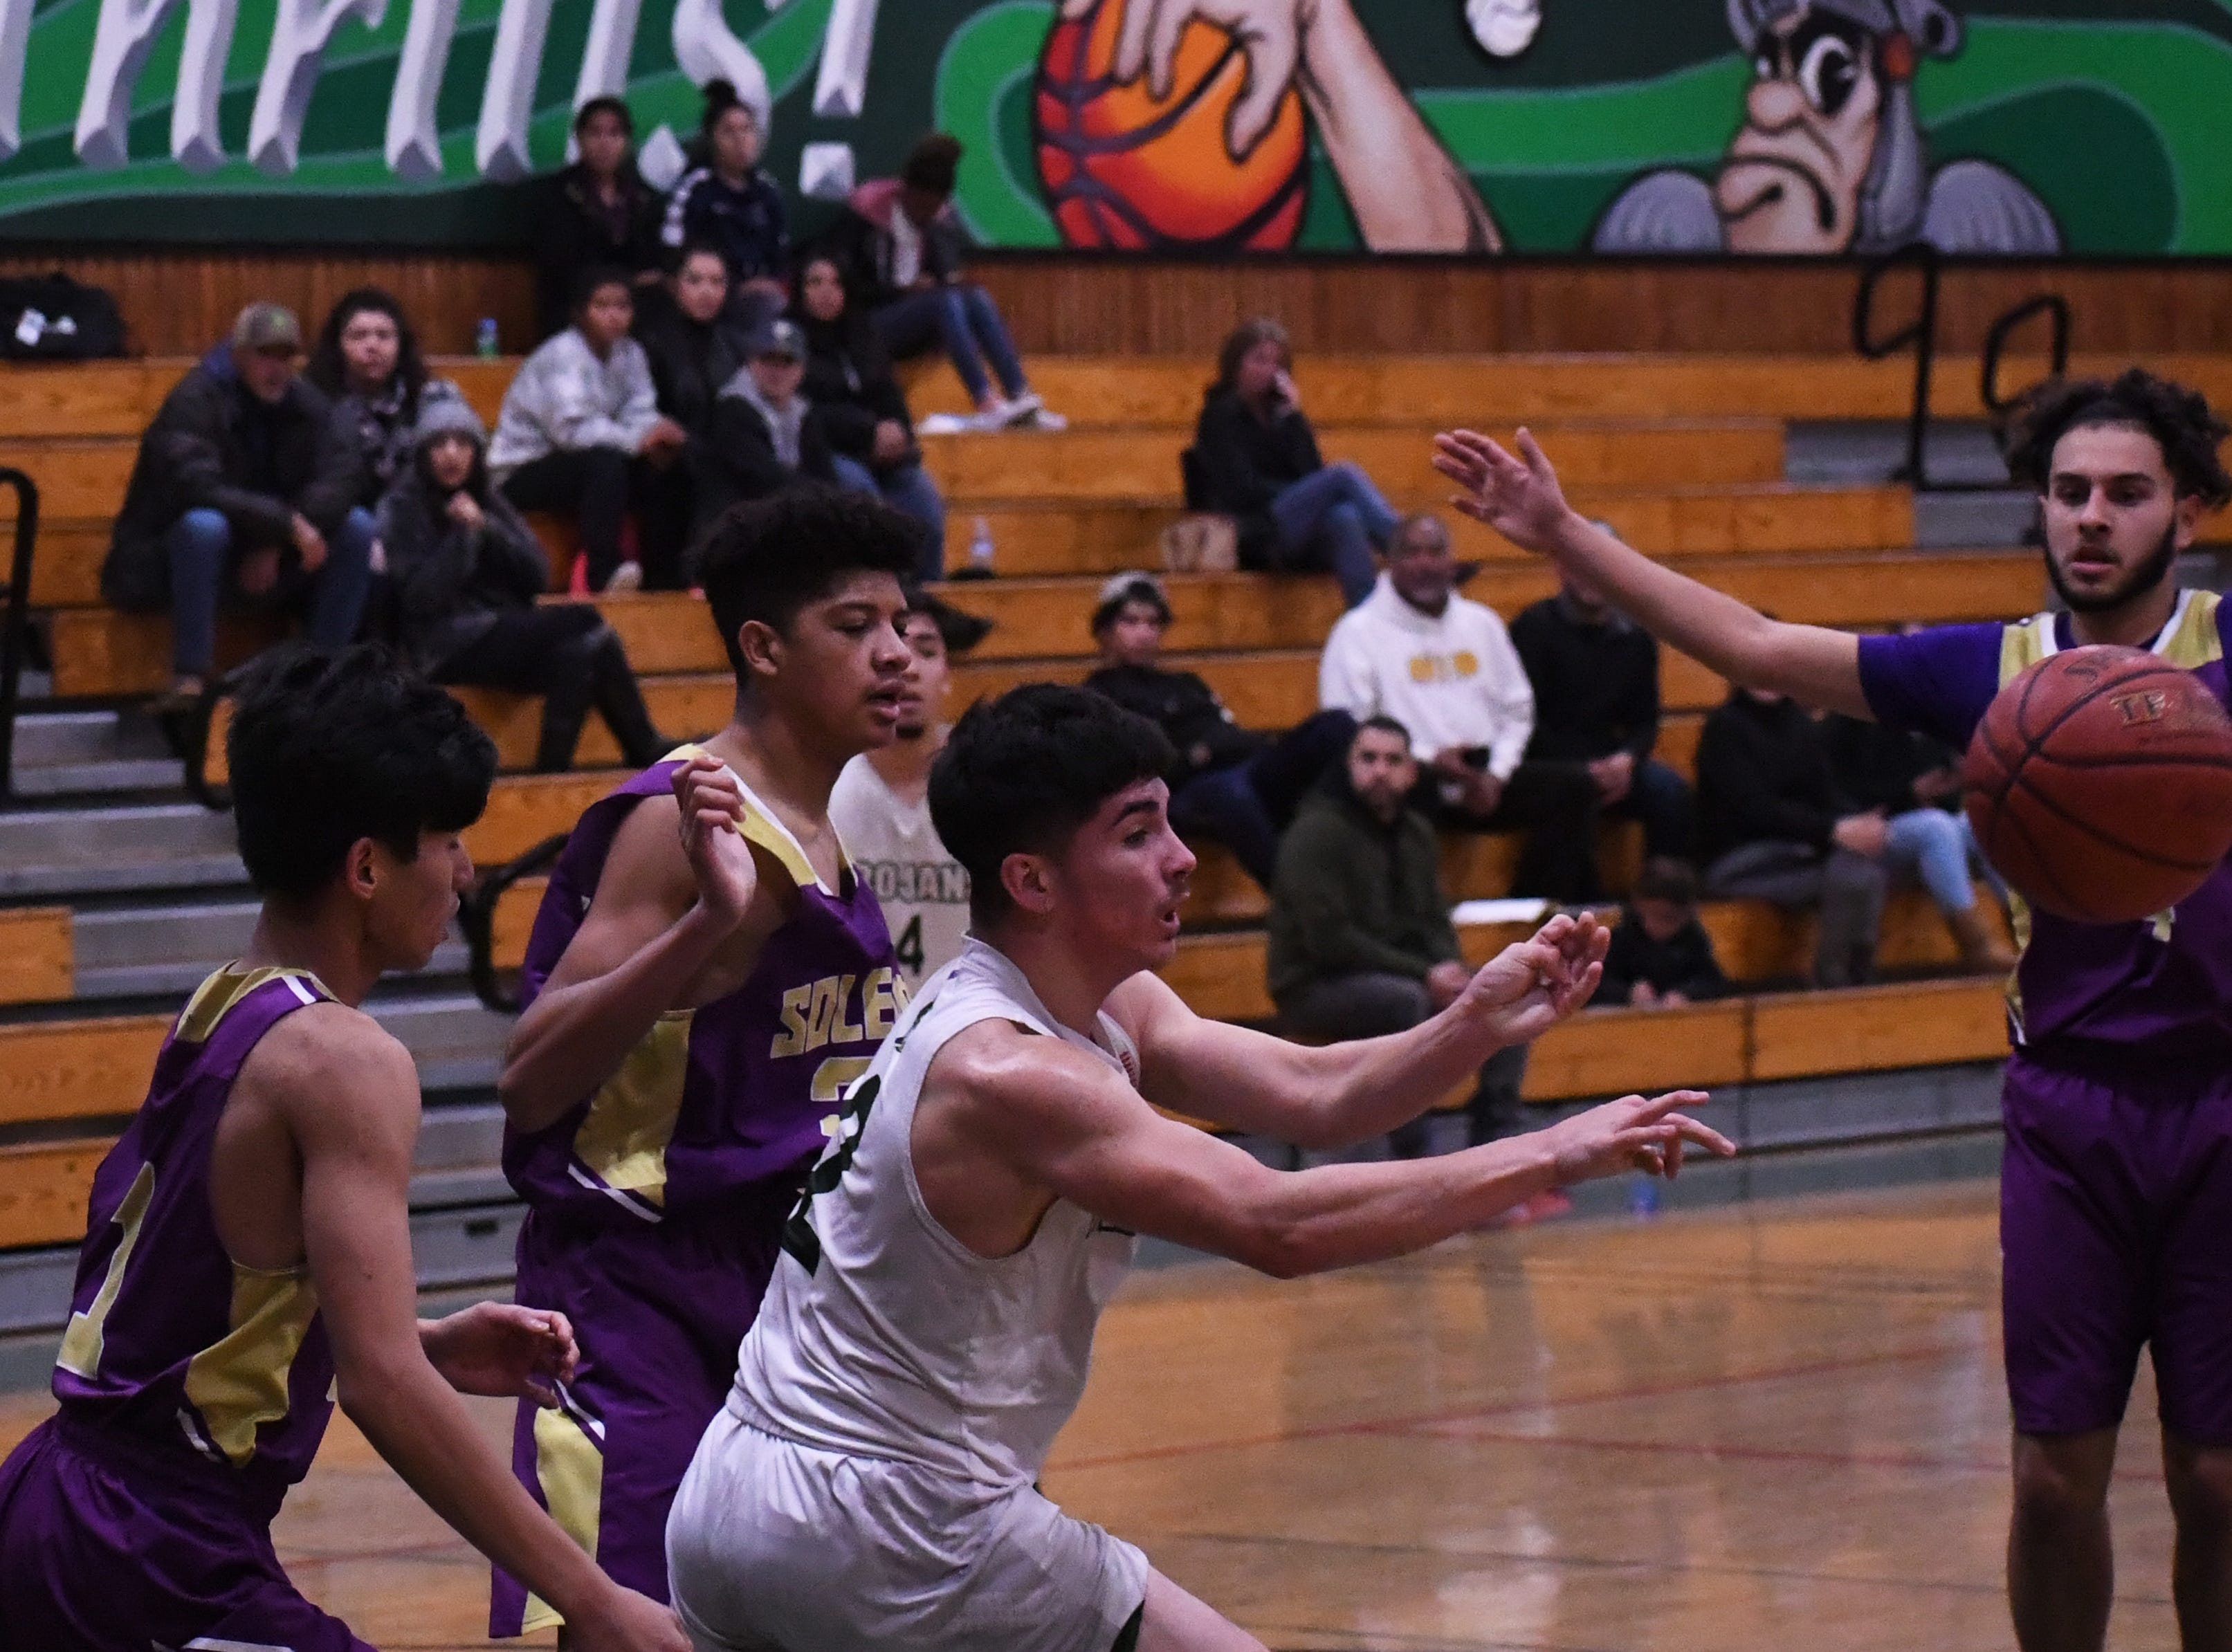 Forward Ulisses Mendoza (2) fires a pass out of the lane.